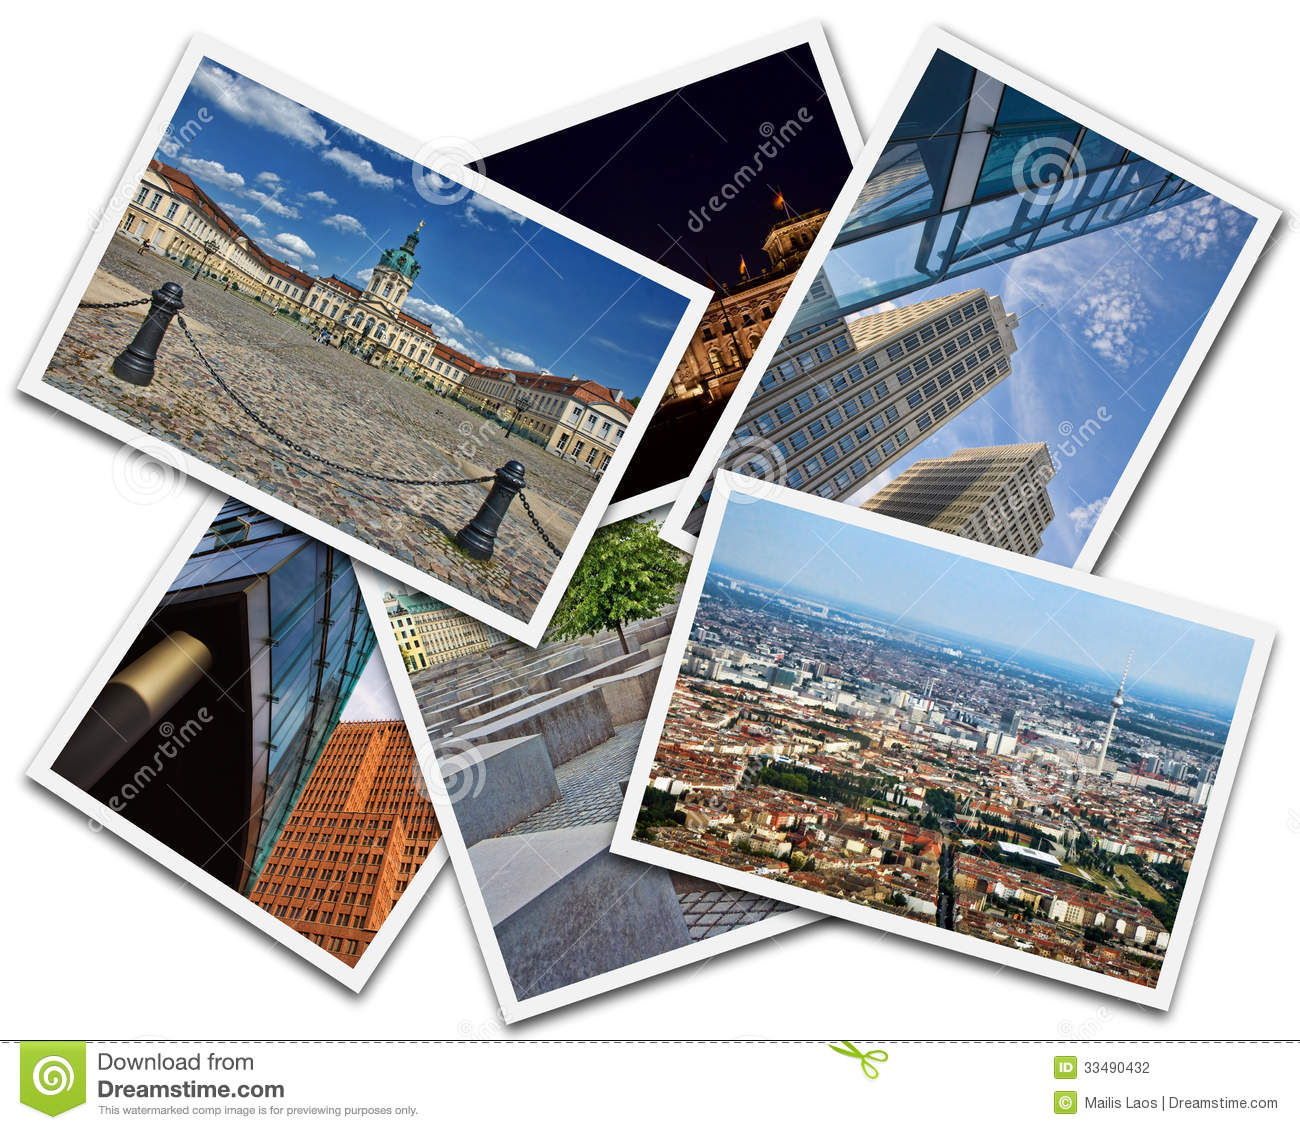 Download Berlin Collage stock photo. Image of national, modern - 33490432